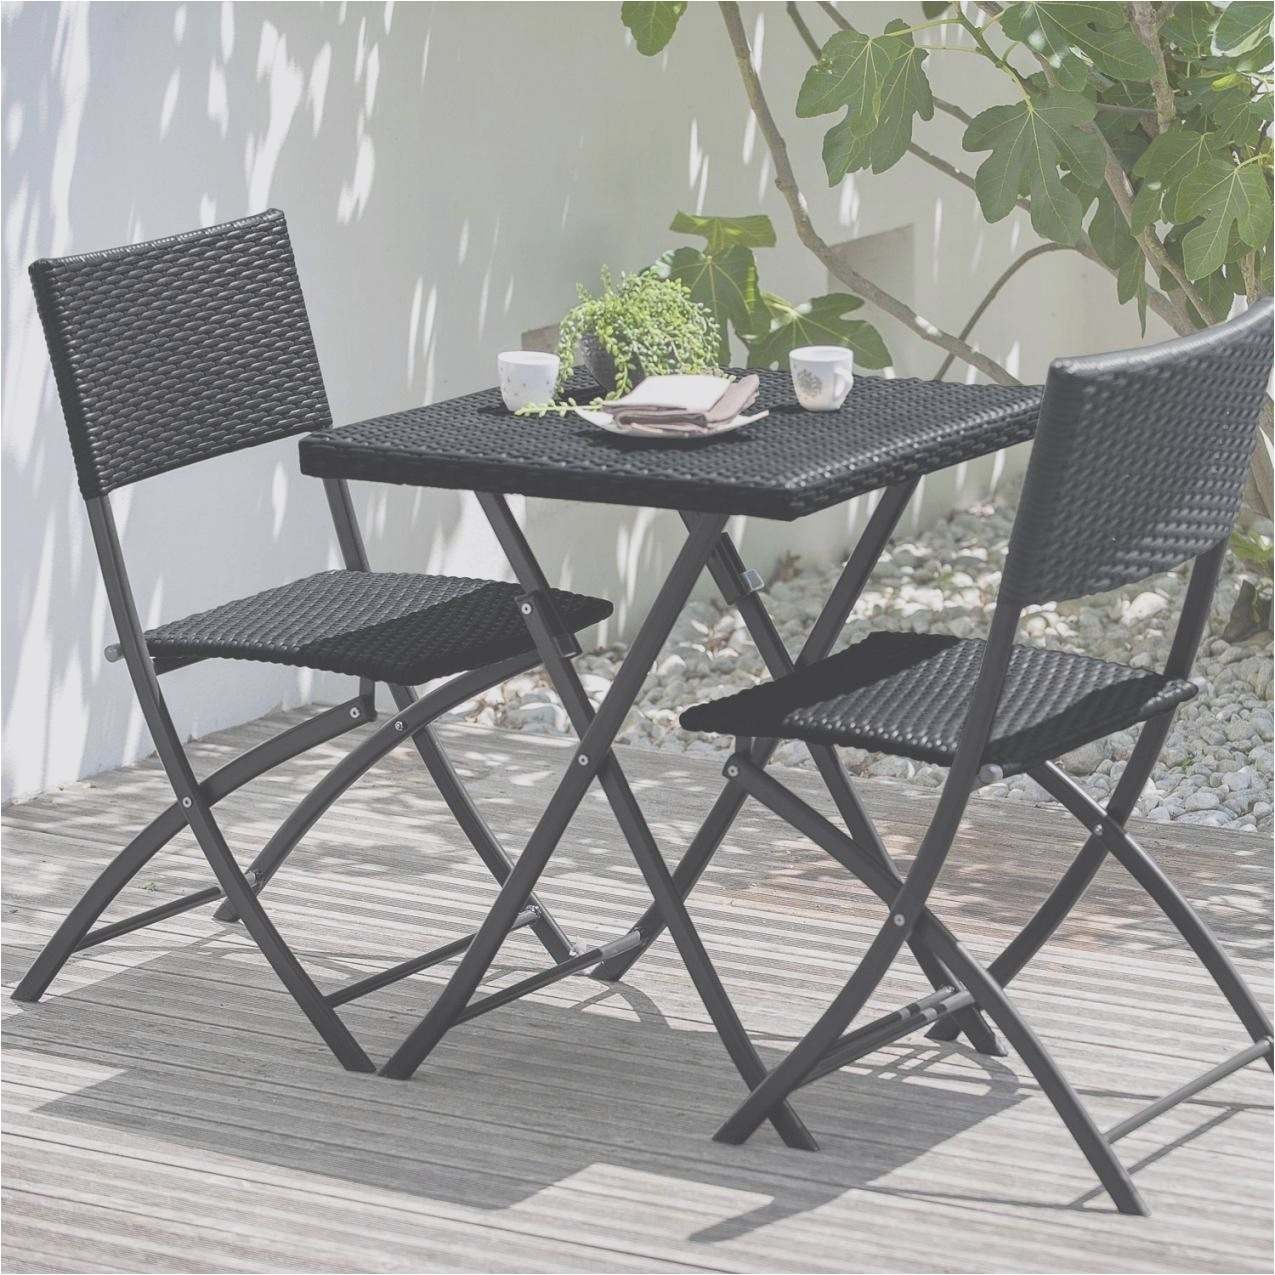 table et chaises de jardin leclerc ensemble table et. Black Bedroom Furniture Sets. Home Design Ideas